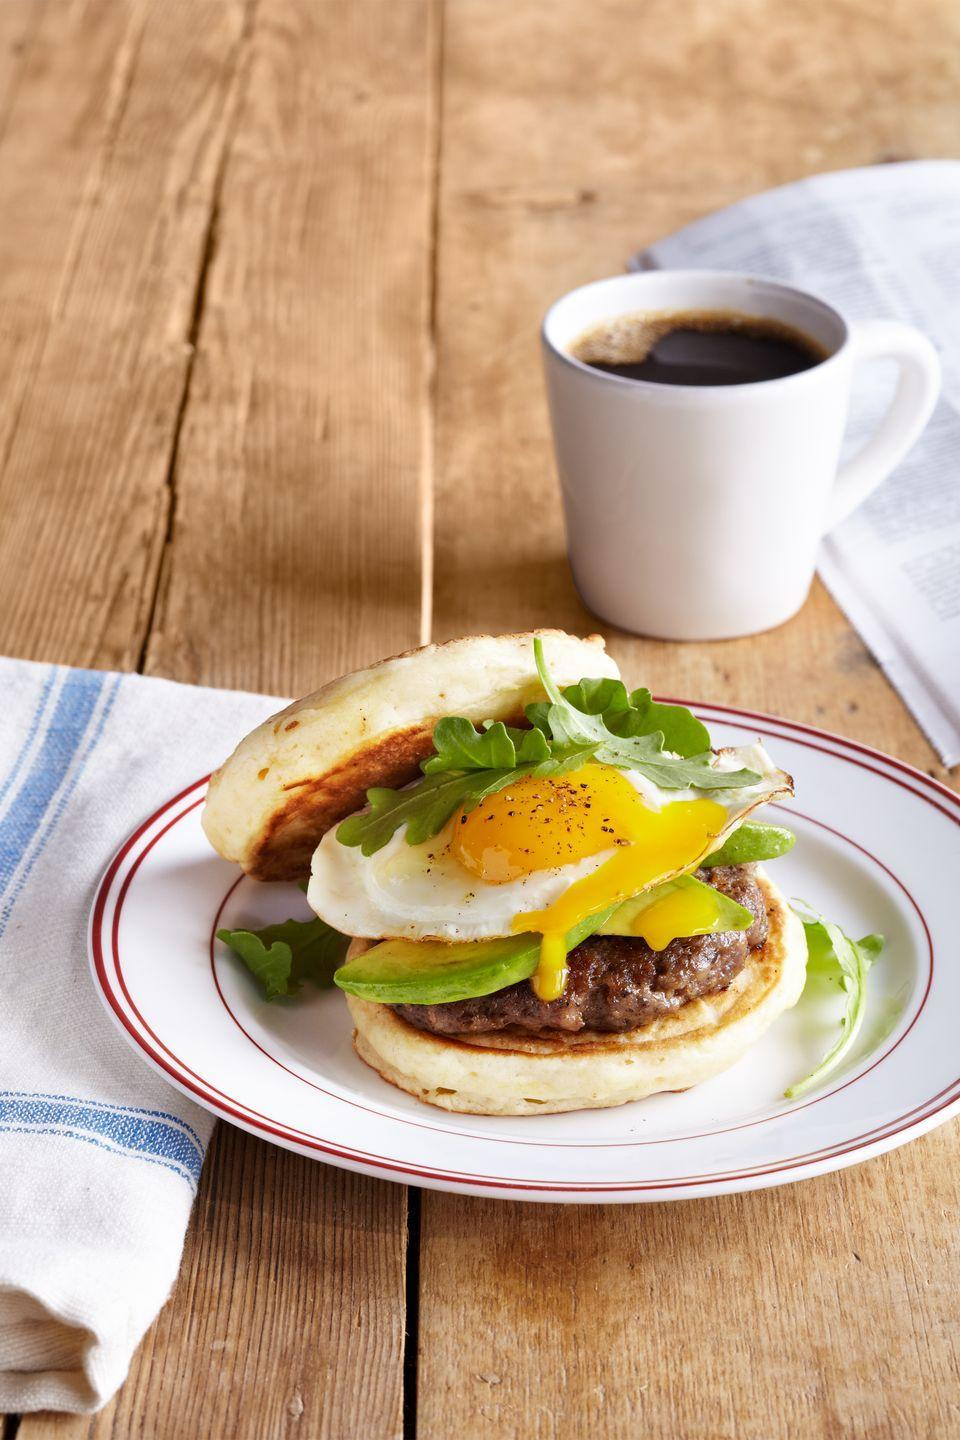 """<p>Take your breakfast sandwich to the next level by using pancakes as bread.</p><p><strong><a href=""""https://www.countryliving.com/food-drinks/recipes/a37596/pancake-breakfast-sandwich-with-sausage-and-avocado/"""" rel=""""nofollow noopener"""" target=""""_blank"""" data-ylk=""""slk:Get the recipe"""" class=""""link rapid-noclick-resp"""">Get the recipe</a>.</strong> </p>"""